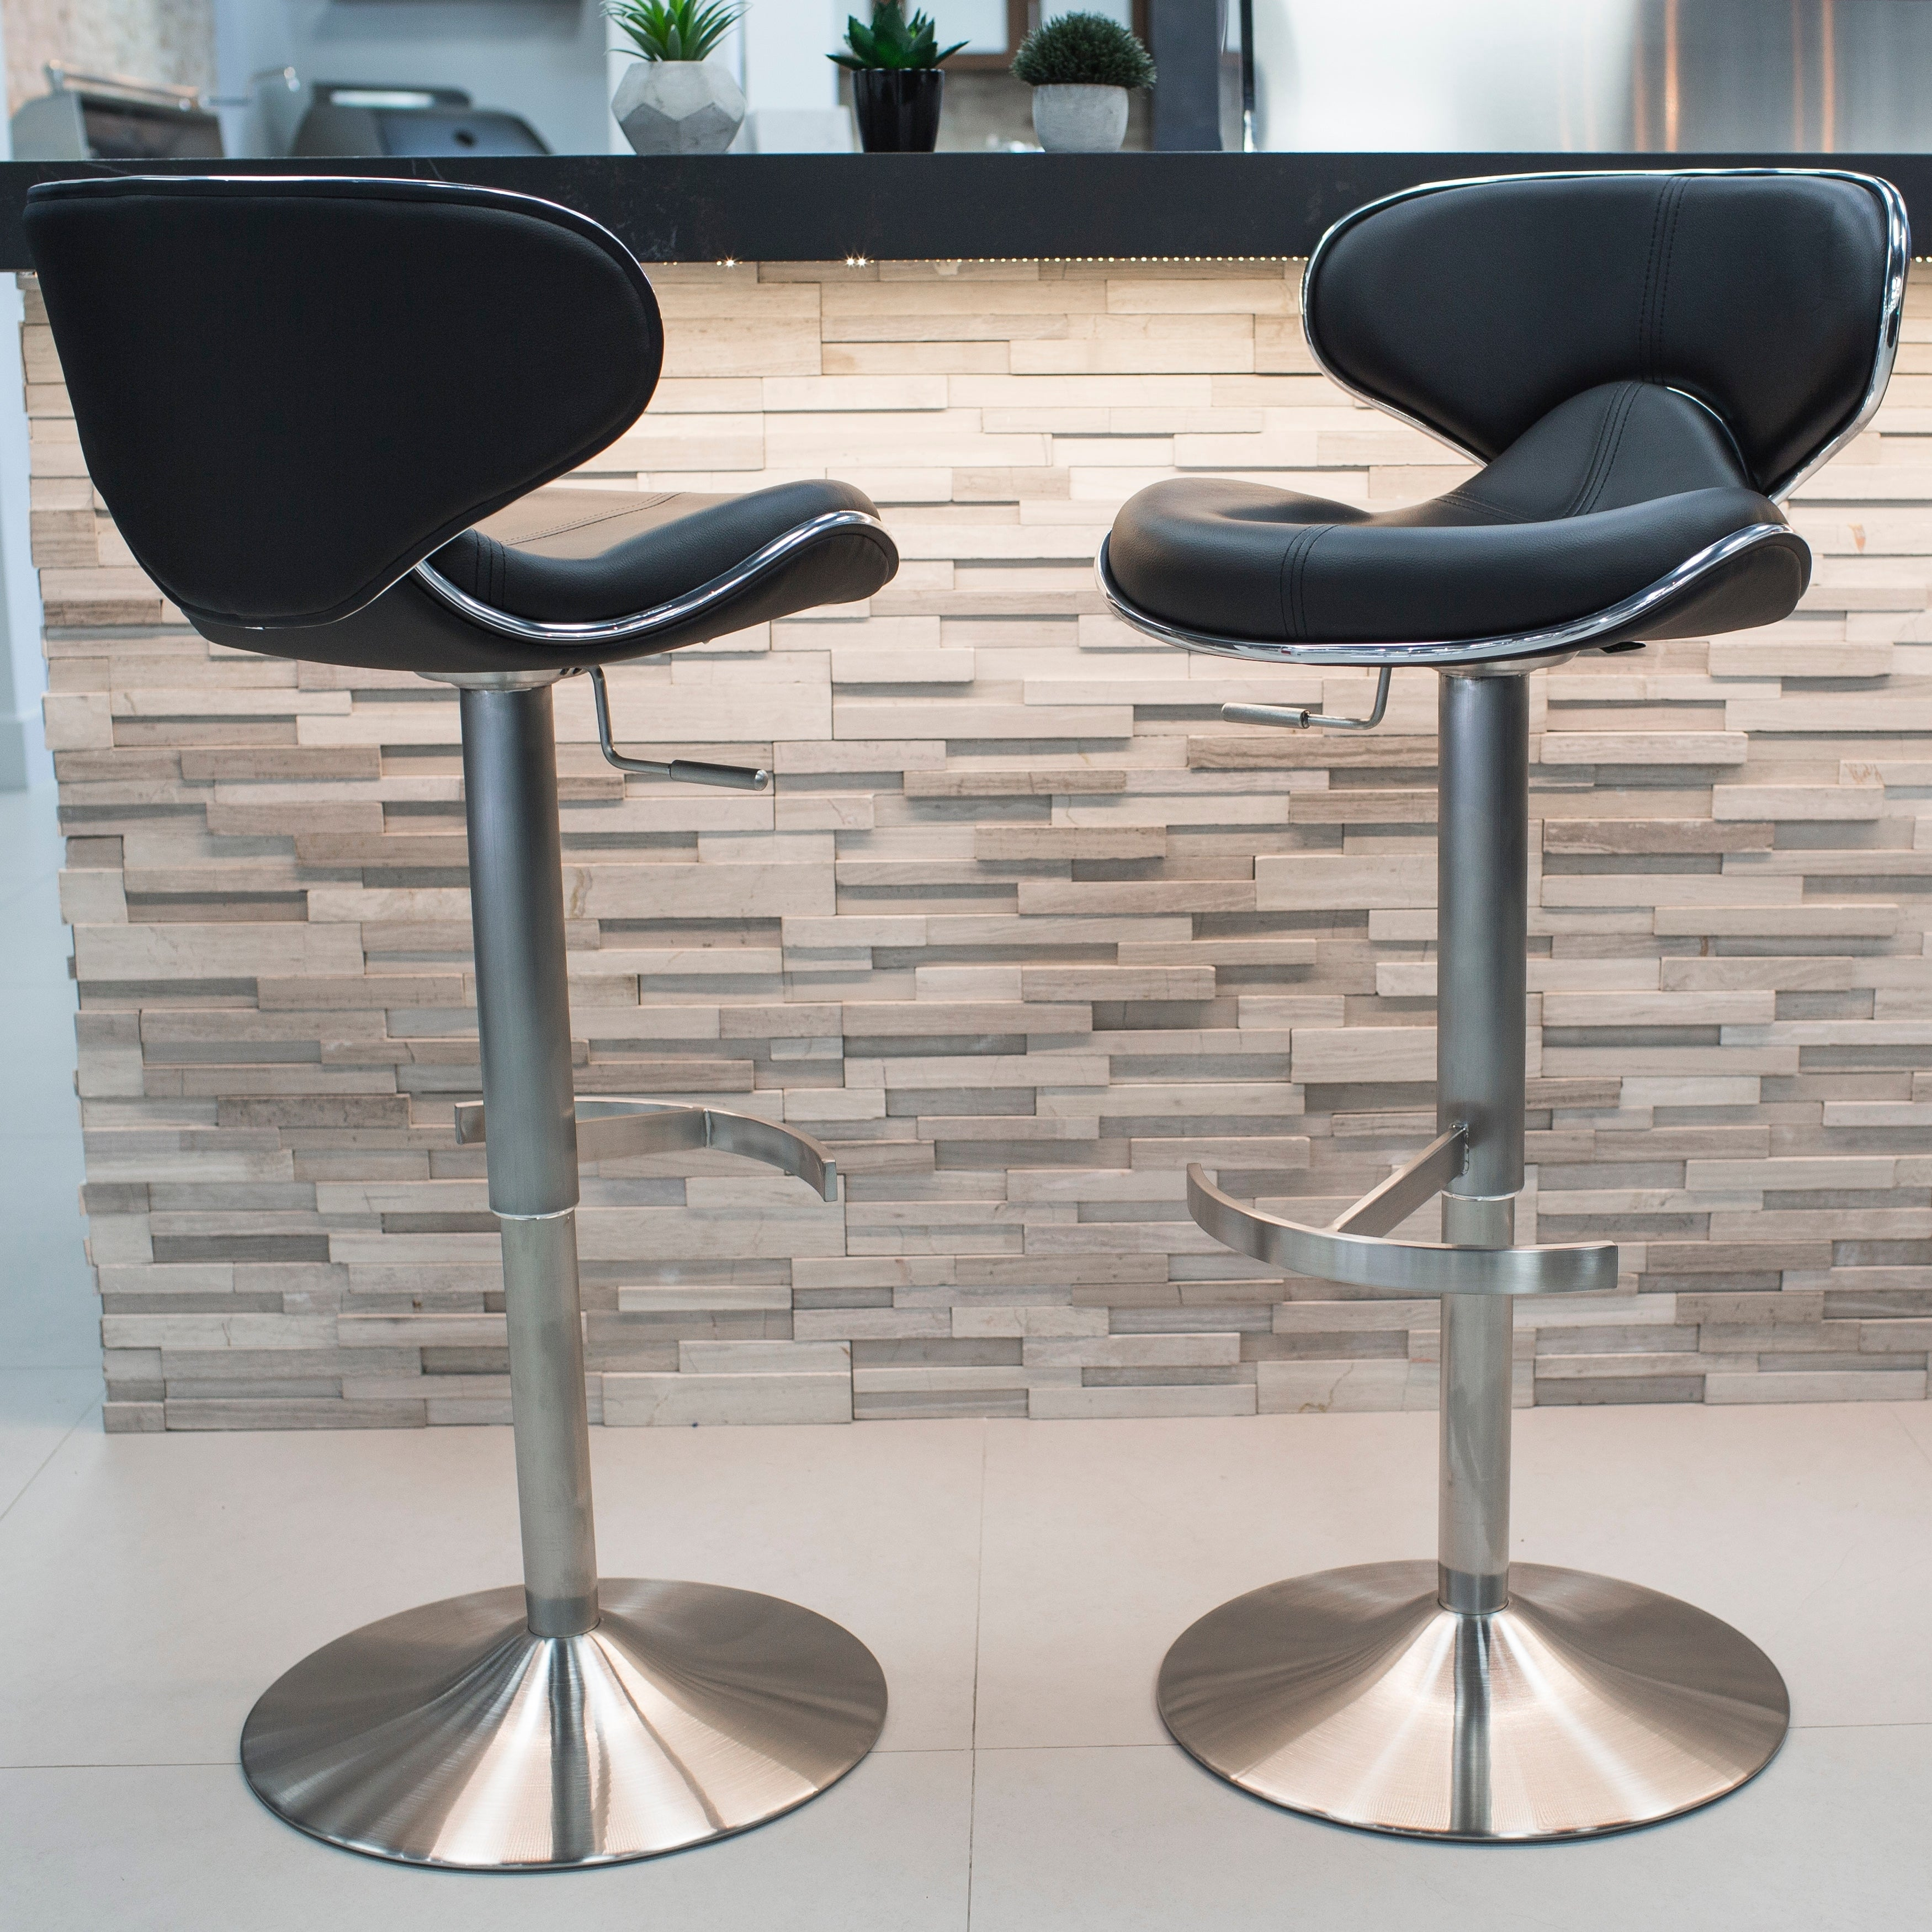 adjustable height swivel bar stool. MIX Brushed Stainless Steel Adjustable Height Swivel Bar Stool - Free Shipping Today Overstock 13443543 E